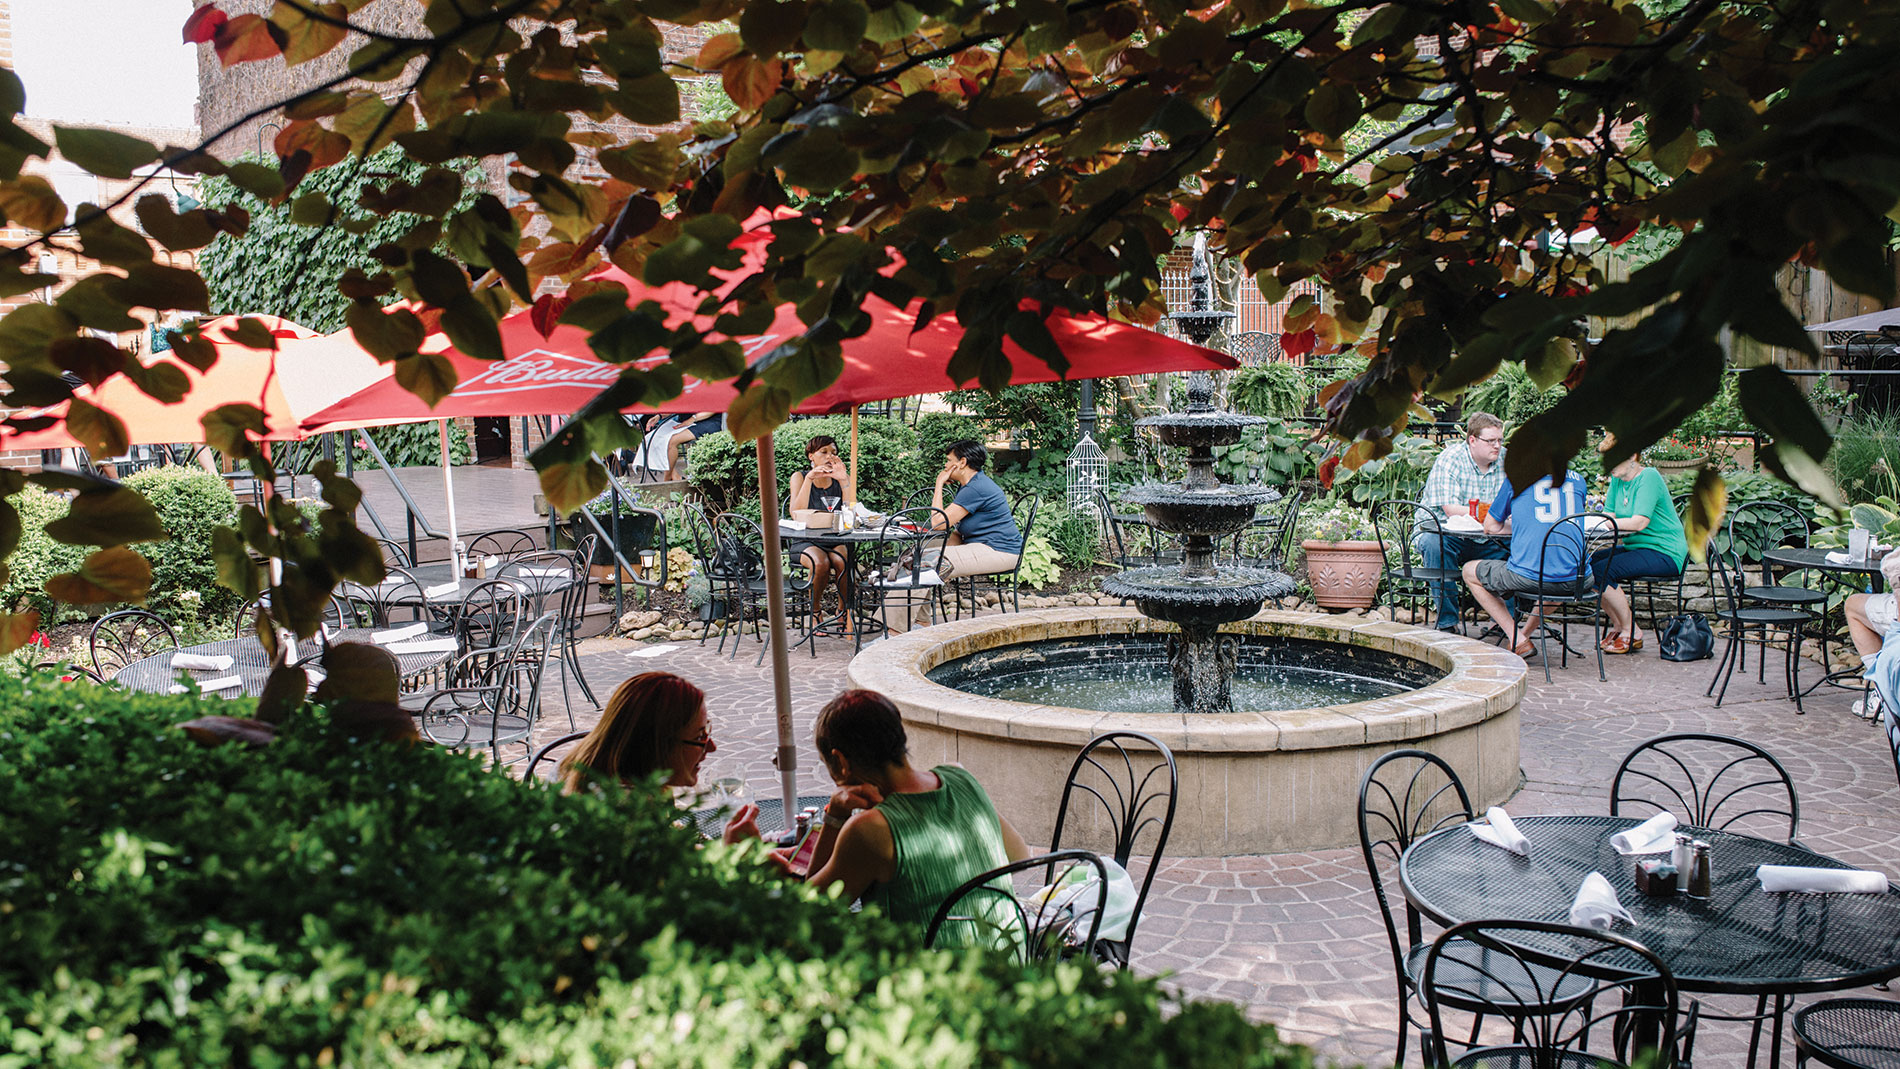 the patio at john d. mcgurk's, your pick for second place favorite patio